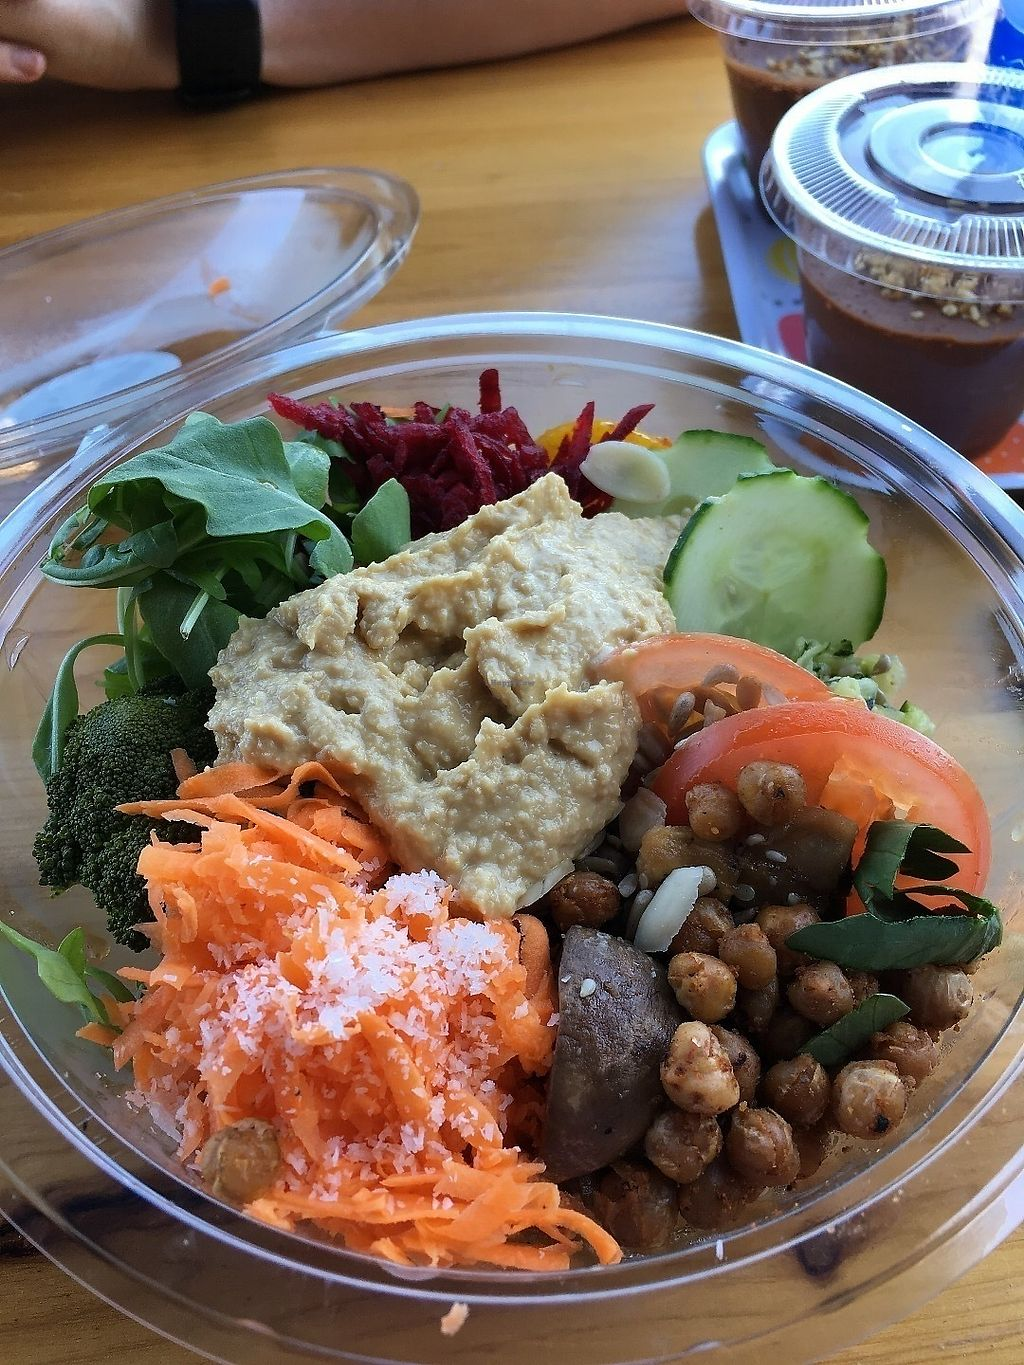 """Photo of Beach Garden  by <a href=""""/members/profile/vegan%20frog"""">vegan frog</a> <br/>Vegan salad <br/> June 19, 2017  - <a href='/contact/abuse/image/75151/271085'>Report</a>"""